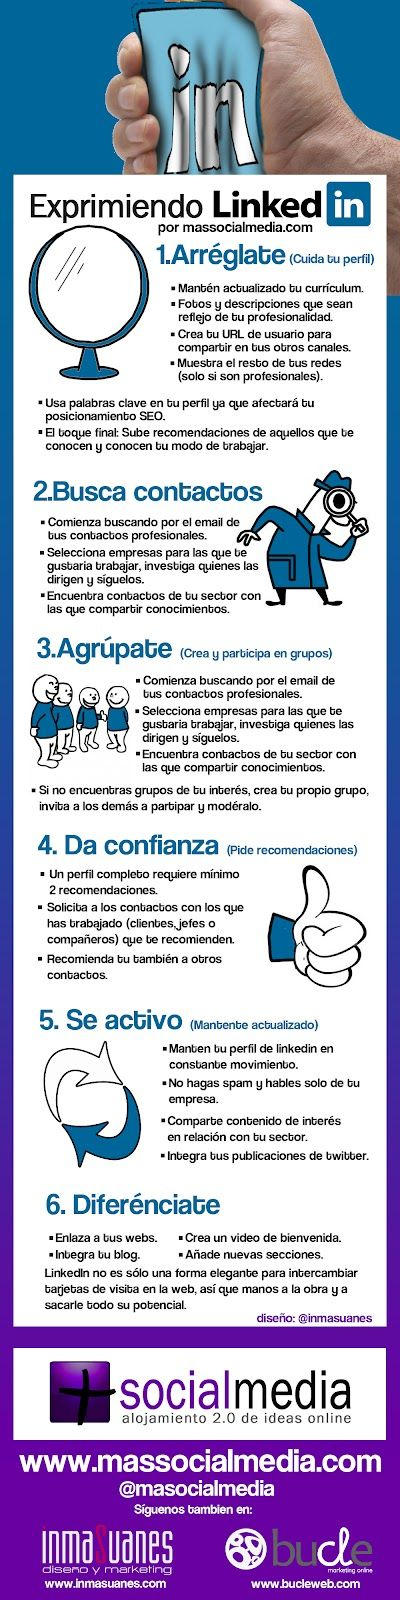 Exprimiendo #LinkedIn #infografia :: http://materialesmarketing.wordpress.com/2013/04/20/exprimiendo-linkedin-infografia/